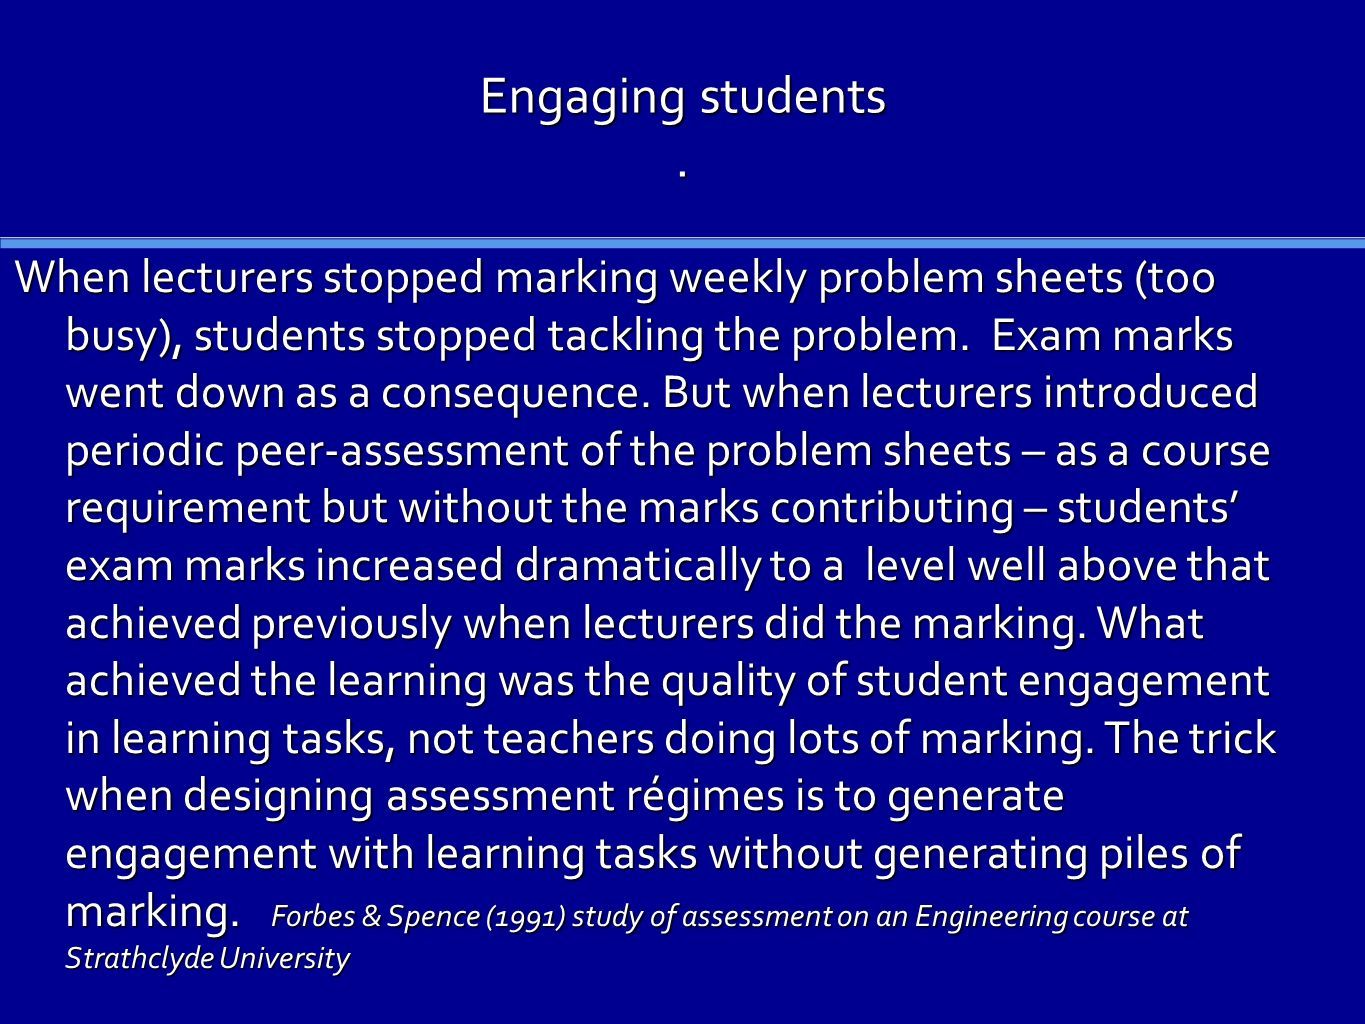 Engaging students.